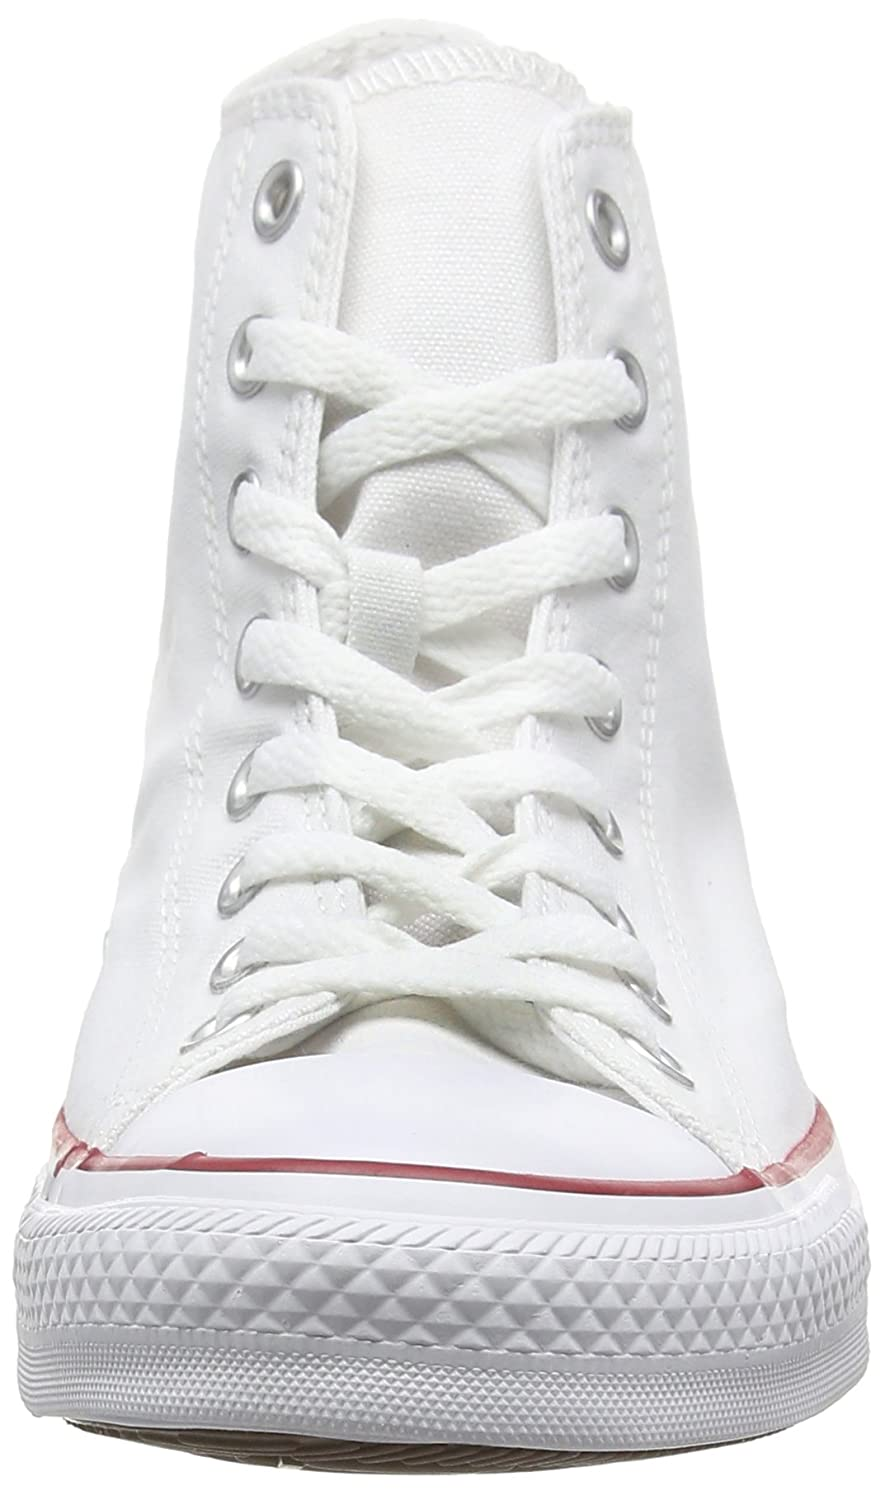 Converse Chuck Taylor All Star Canvas High Top Sneaker B000B2KPH0 3.5 US Men/5.5 US Women|Optical White